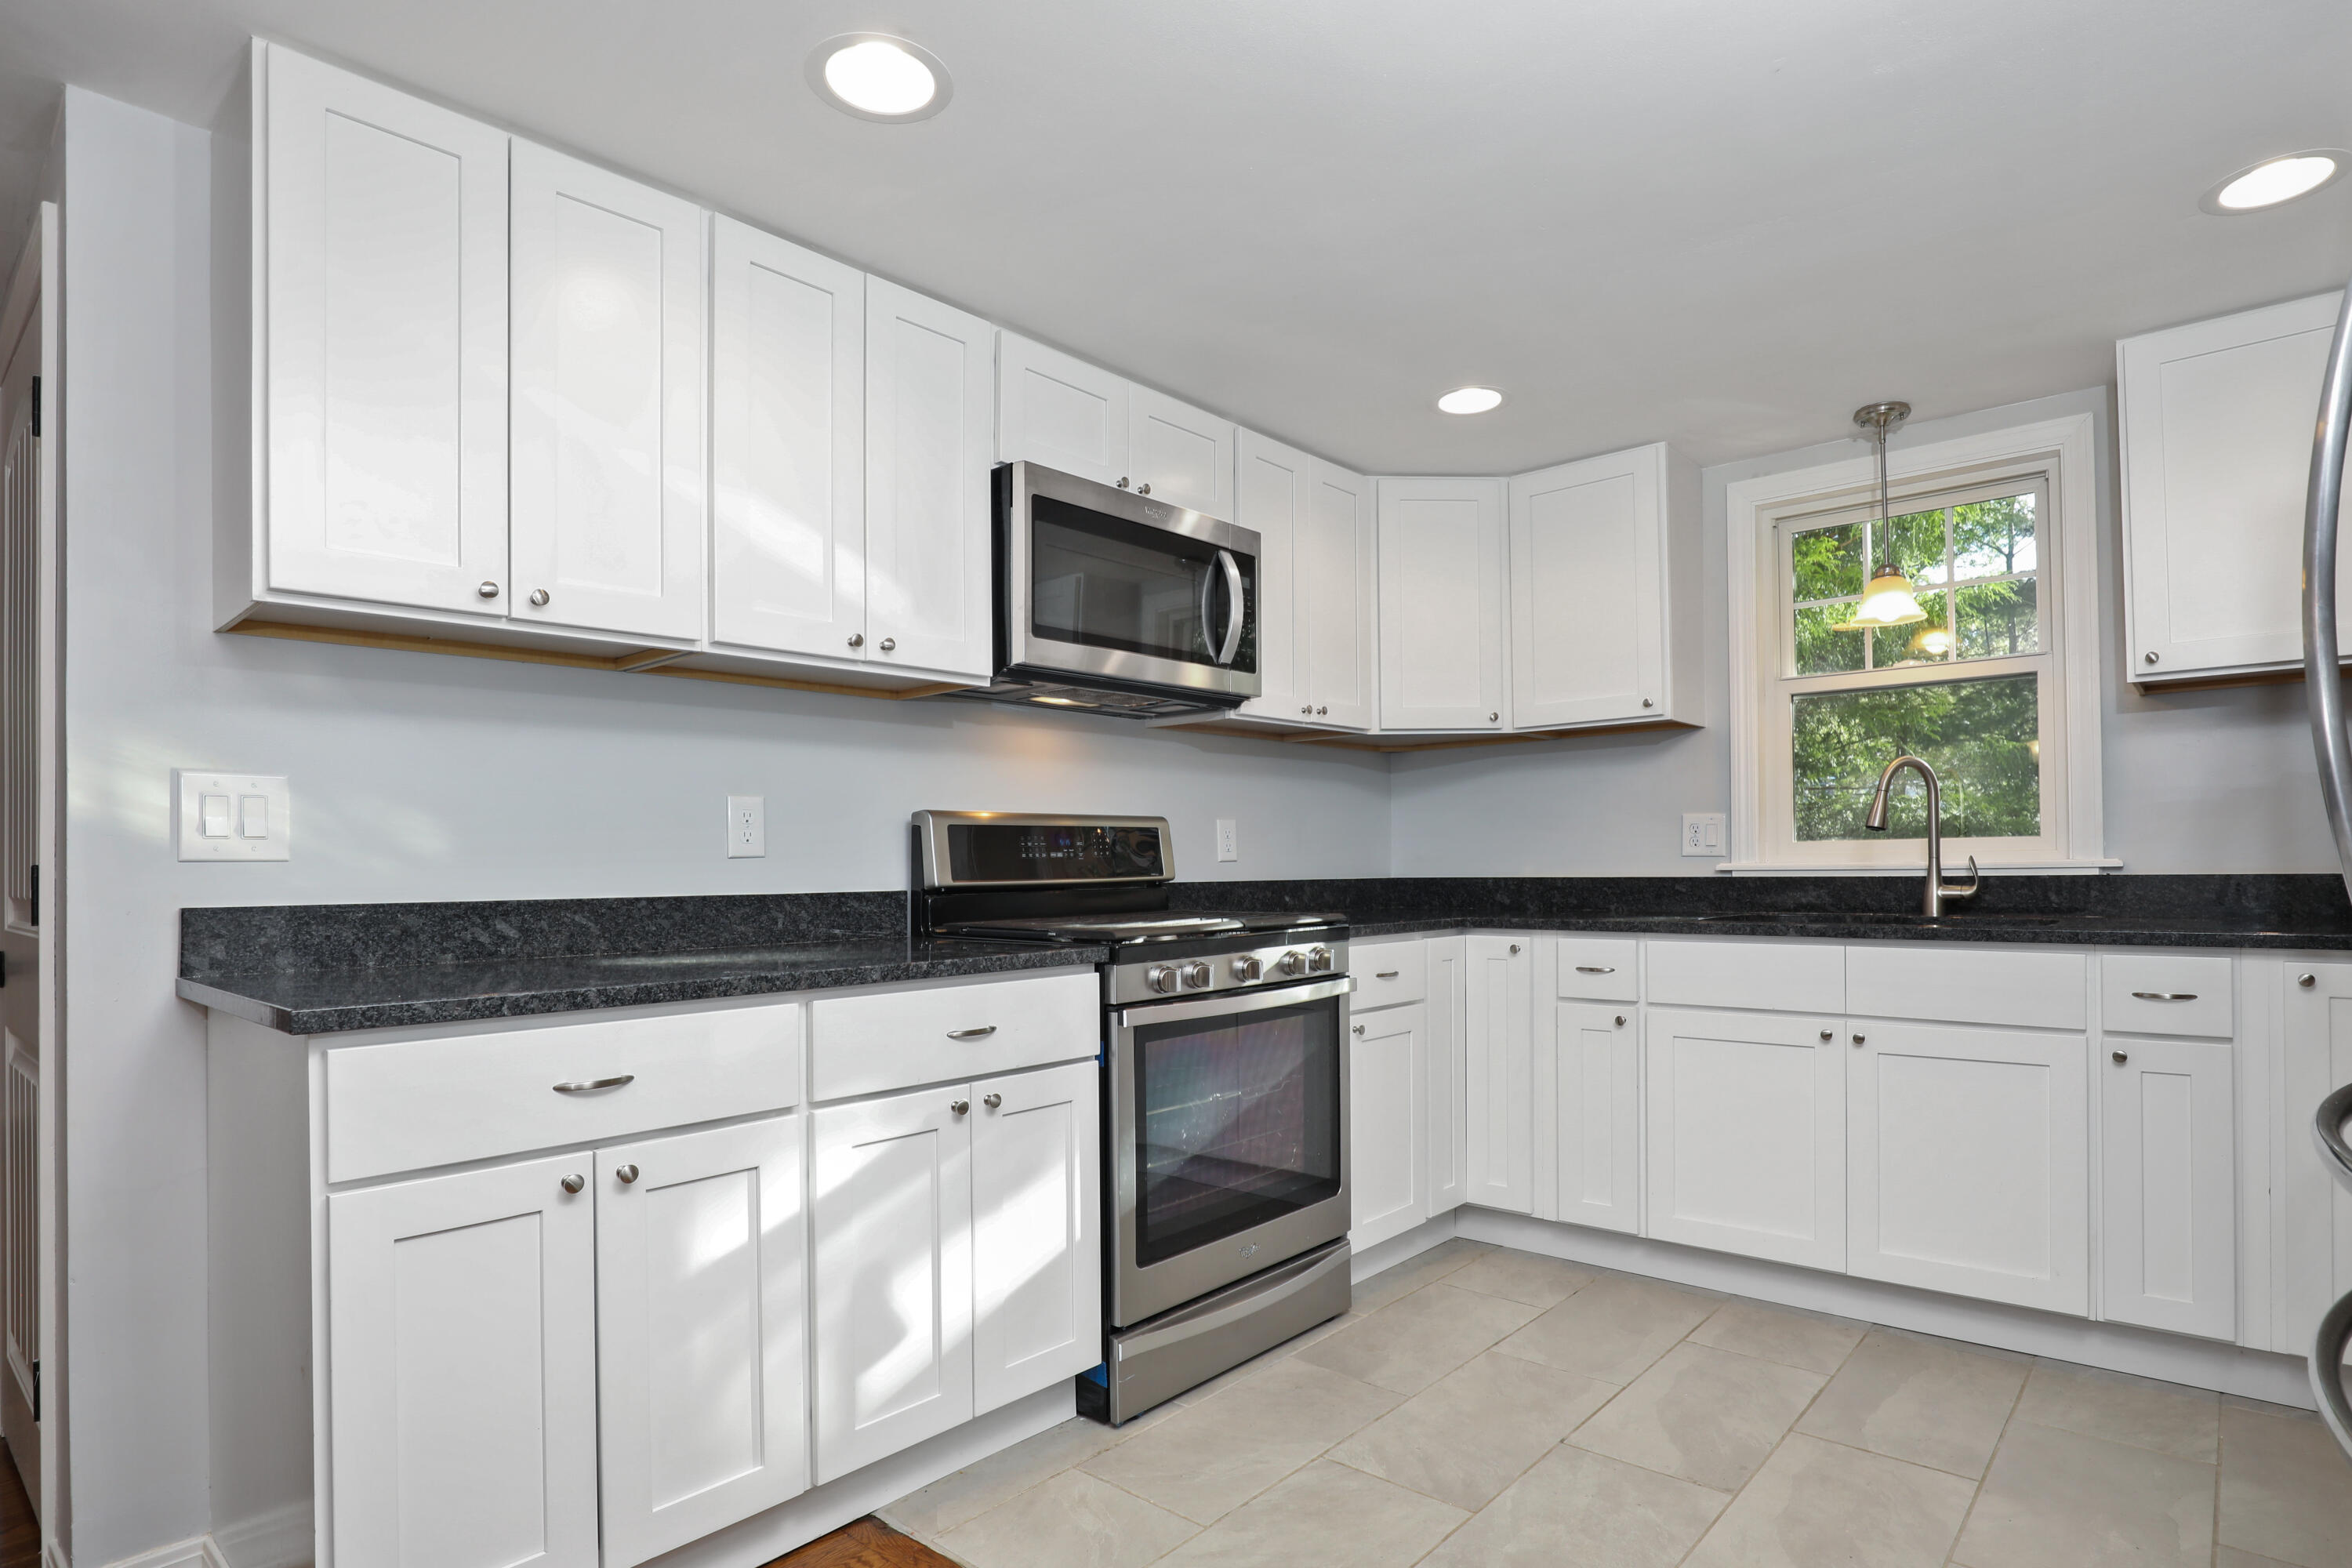 9 Grouse Lane, Hyannis, MA photo 9